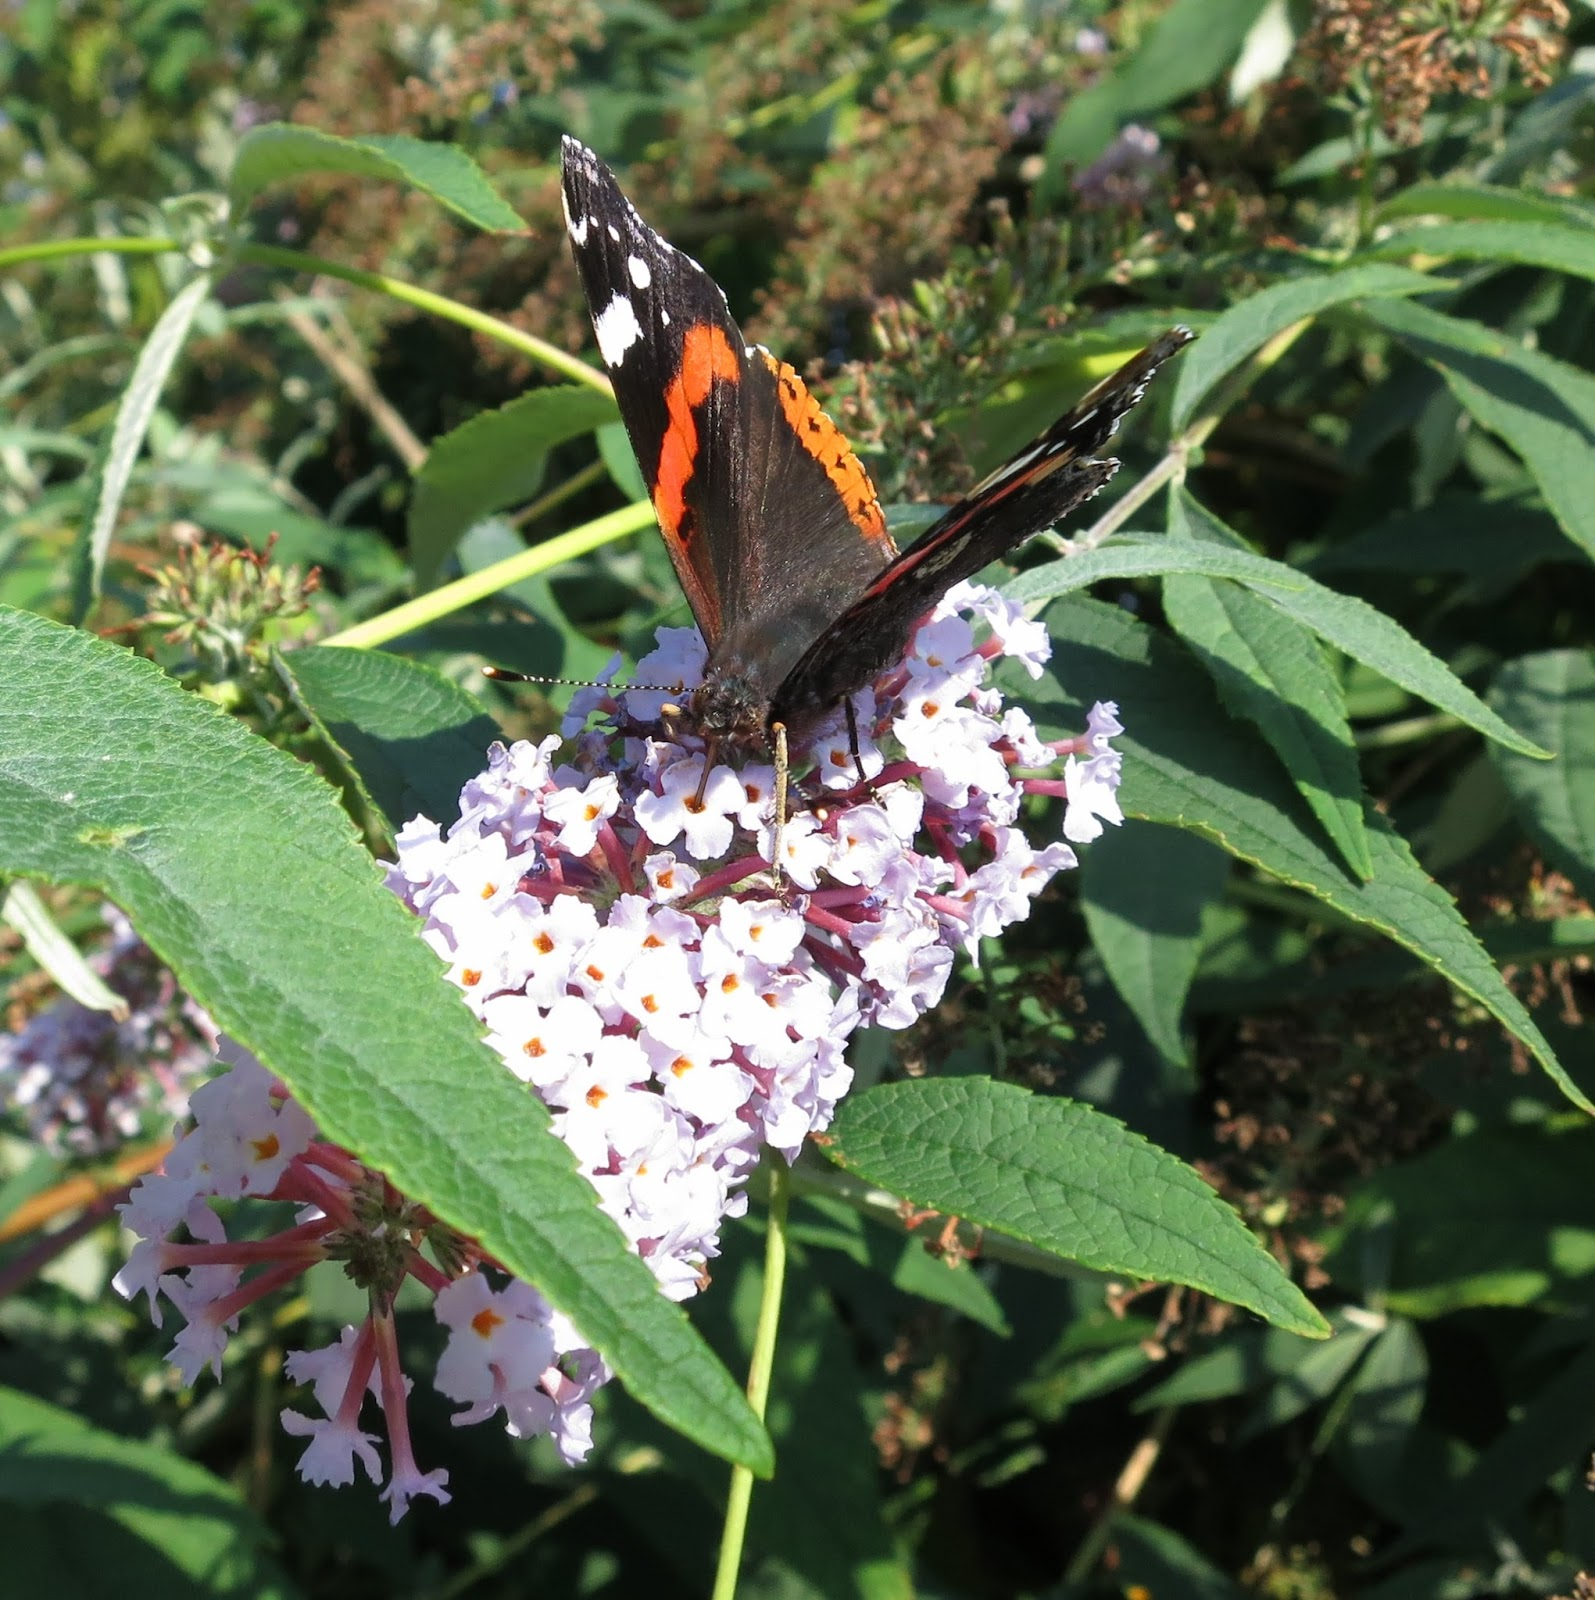 Red Admiral butterfly on buddleia flower - closer. With half open wings.